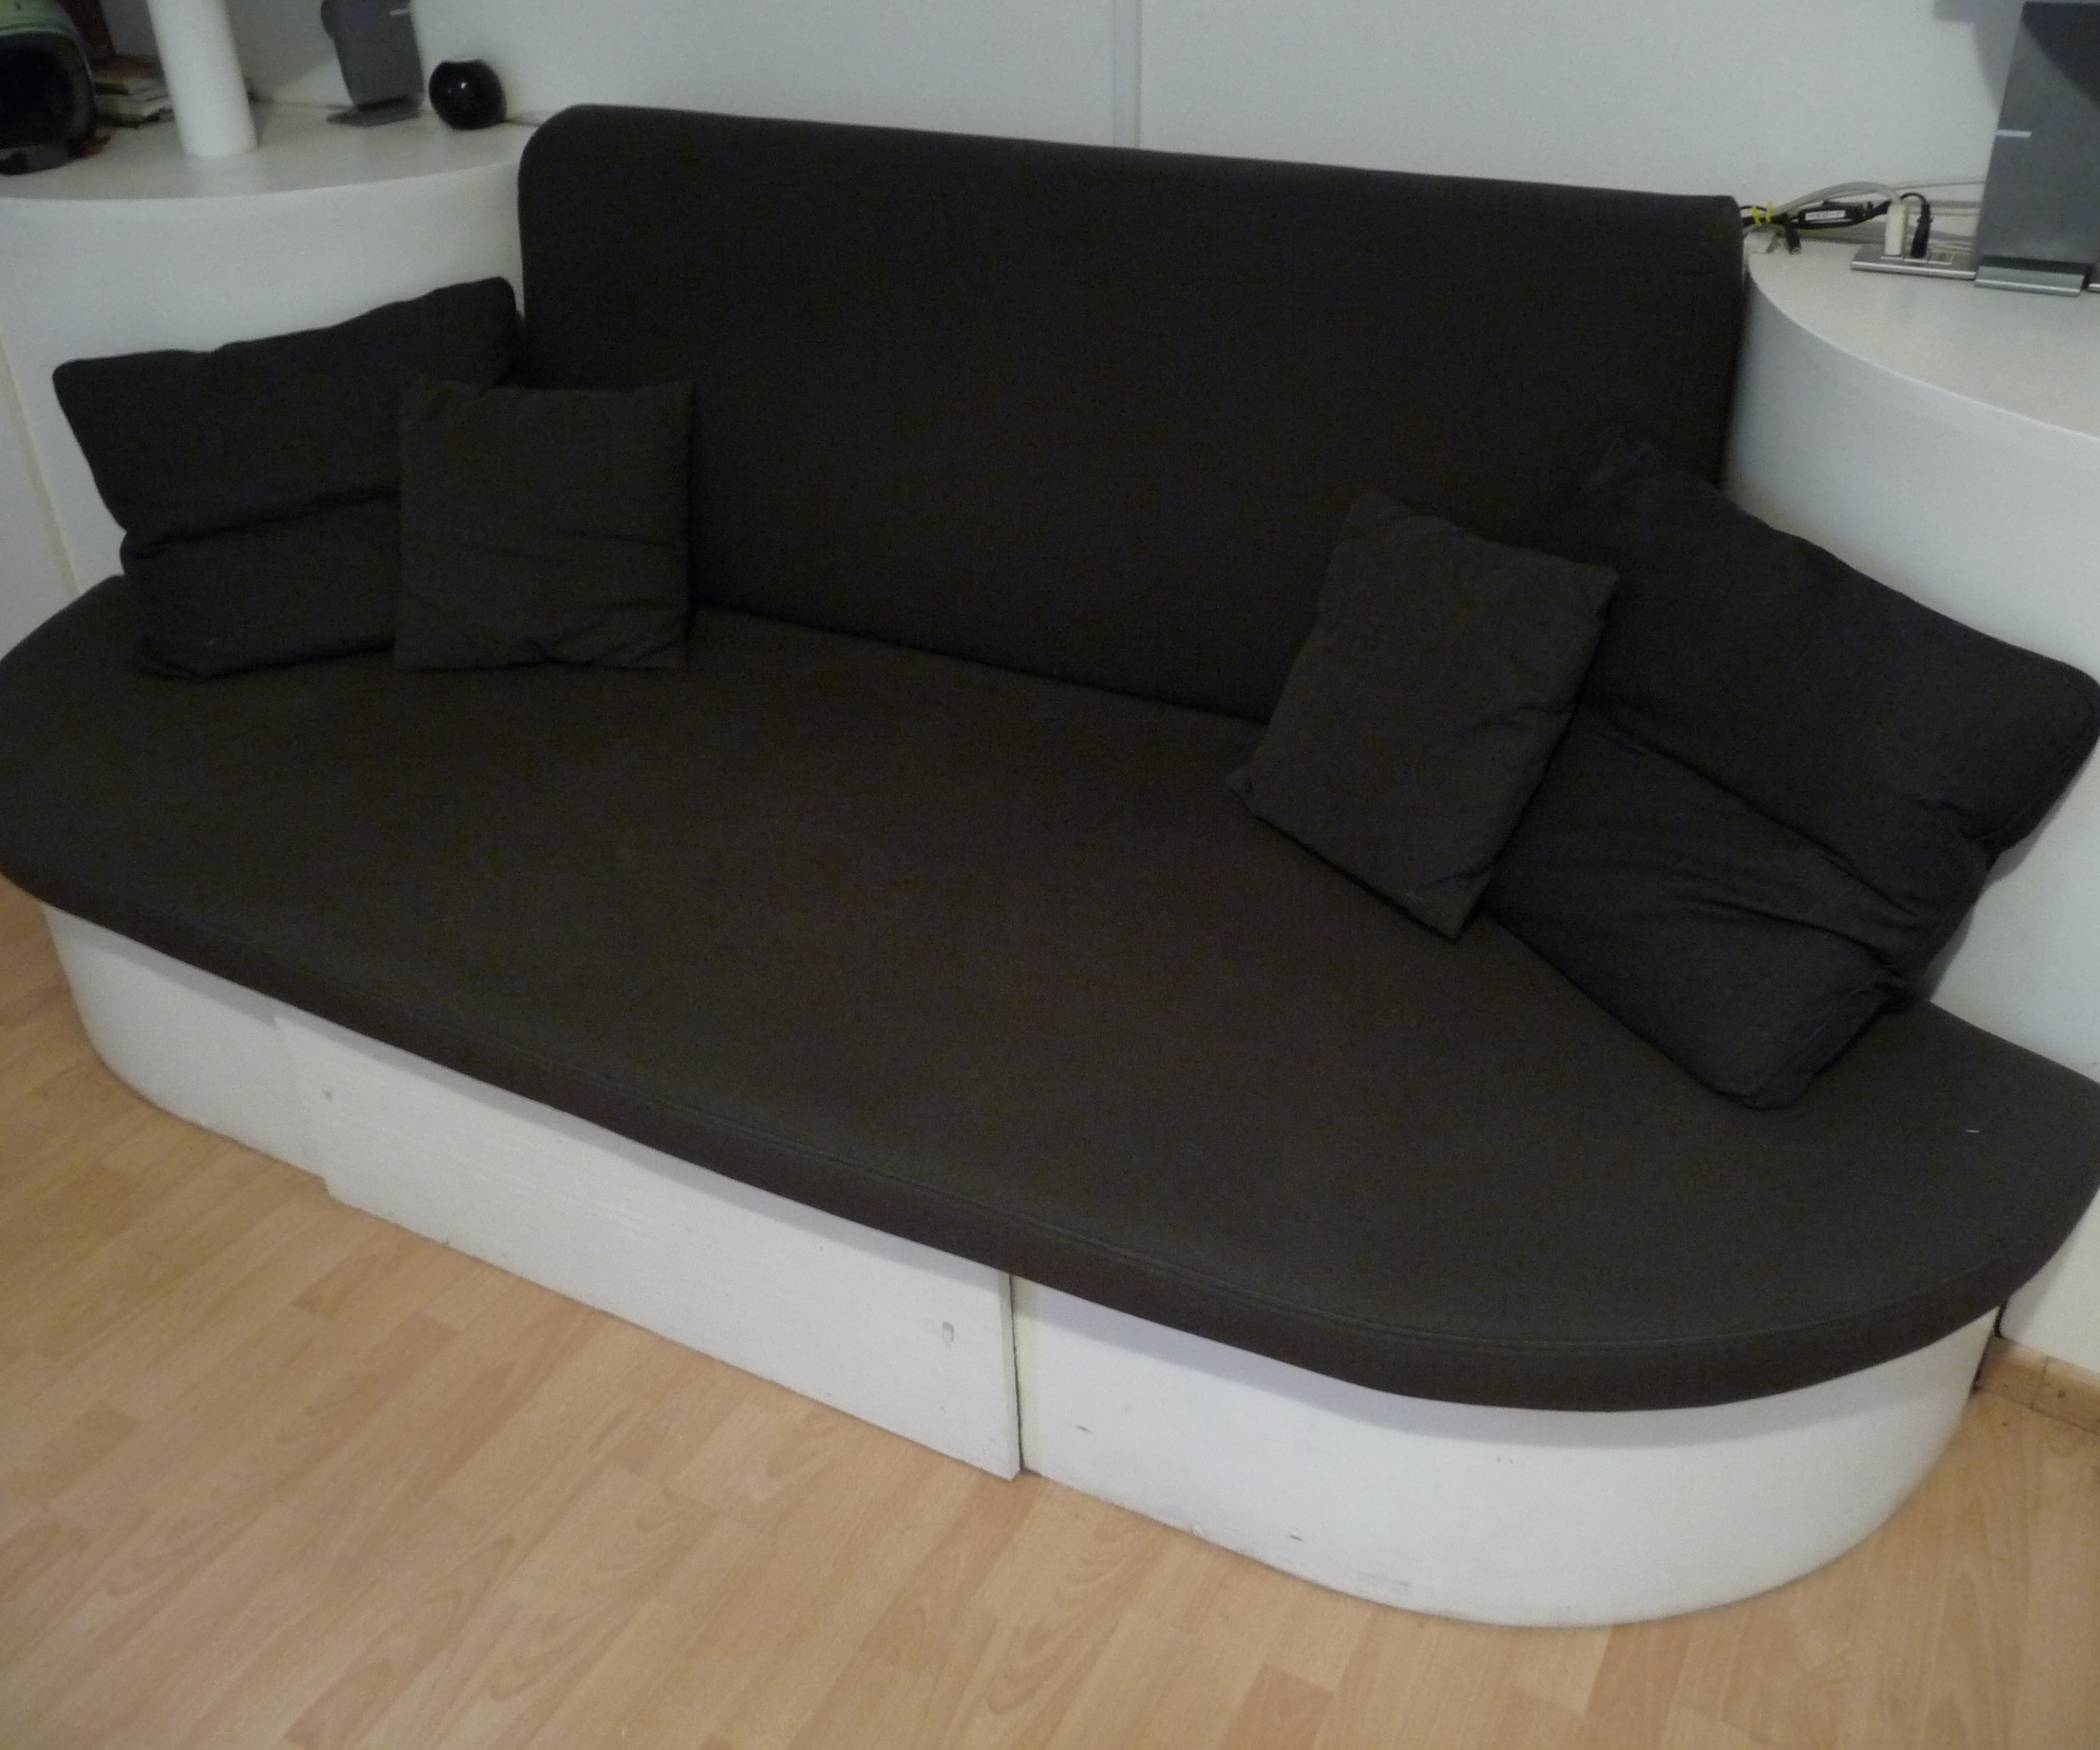 Diy Stylish Sofa-Bed: 7 Steps (With Pictures) inside Diy Sleeper Sofa (Image 13 of 30)